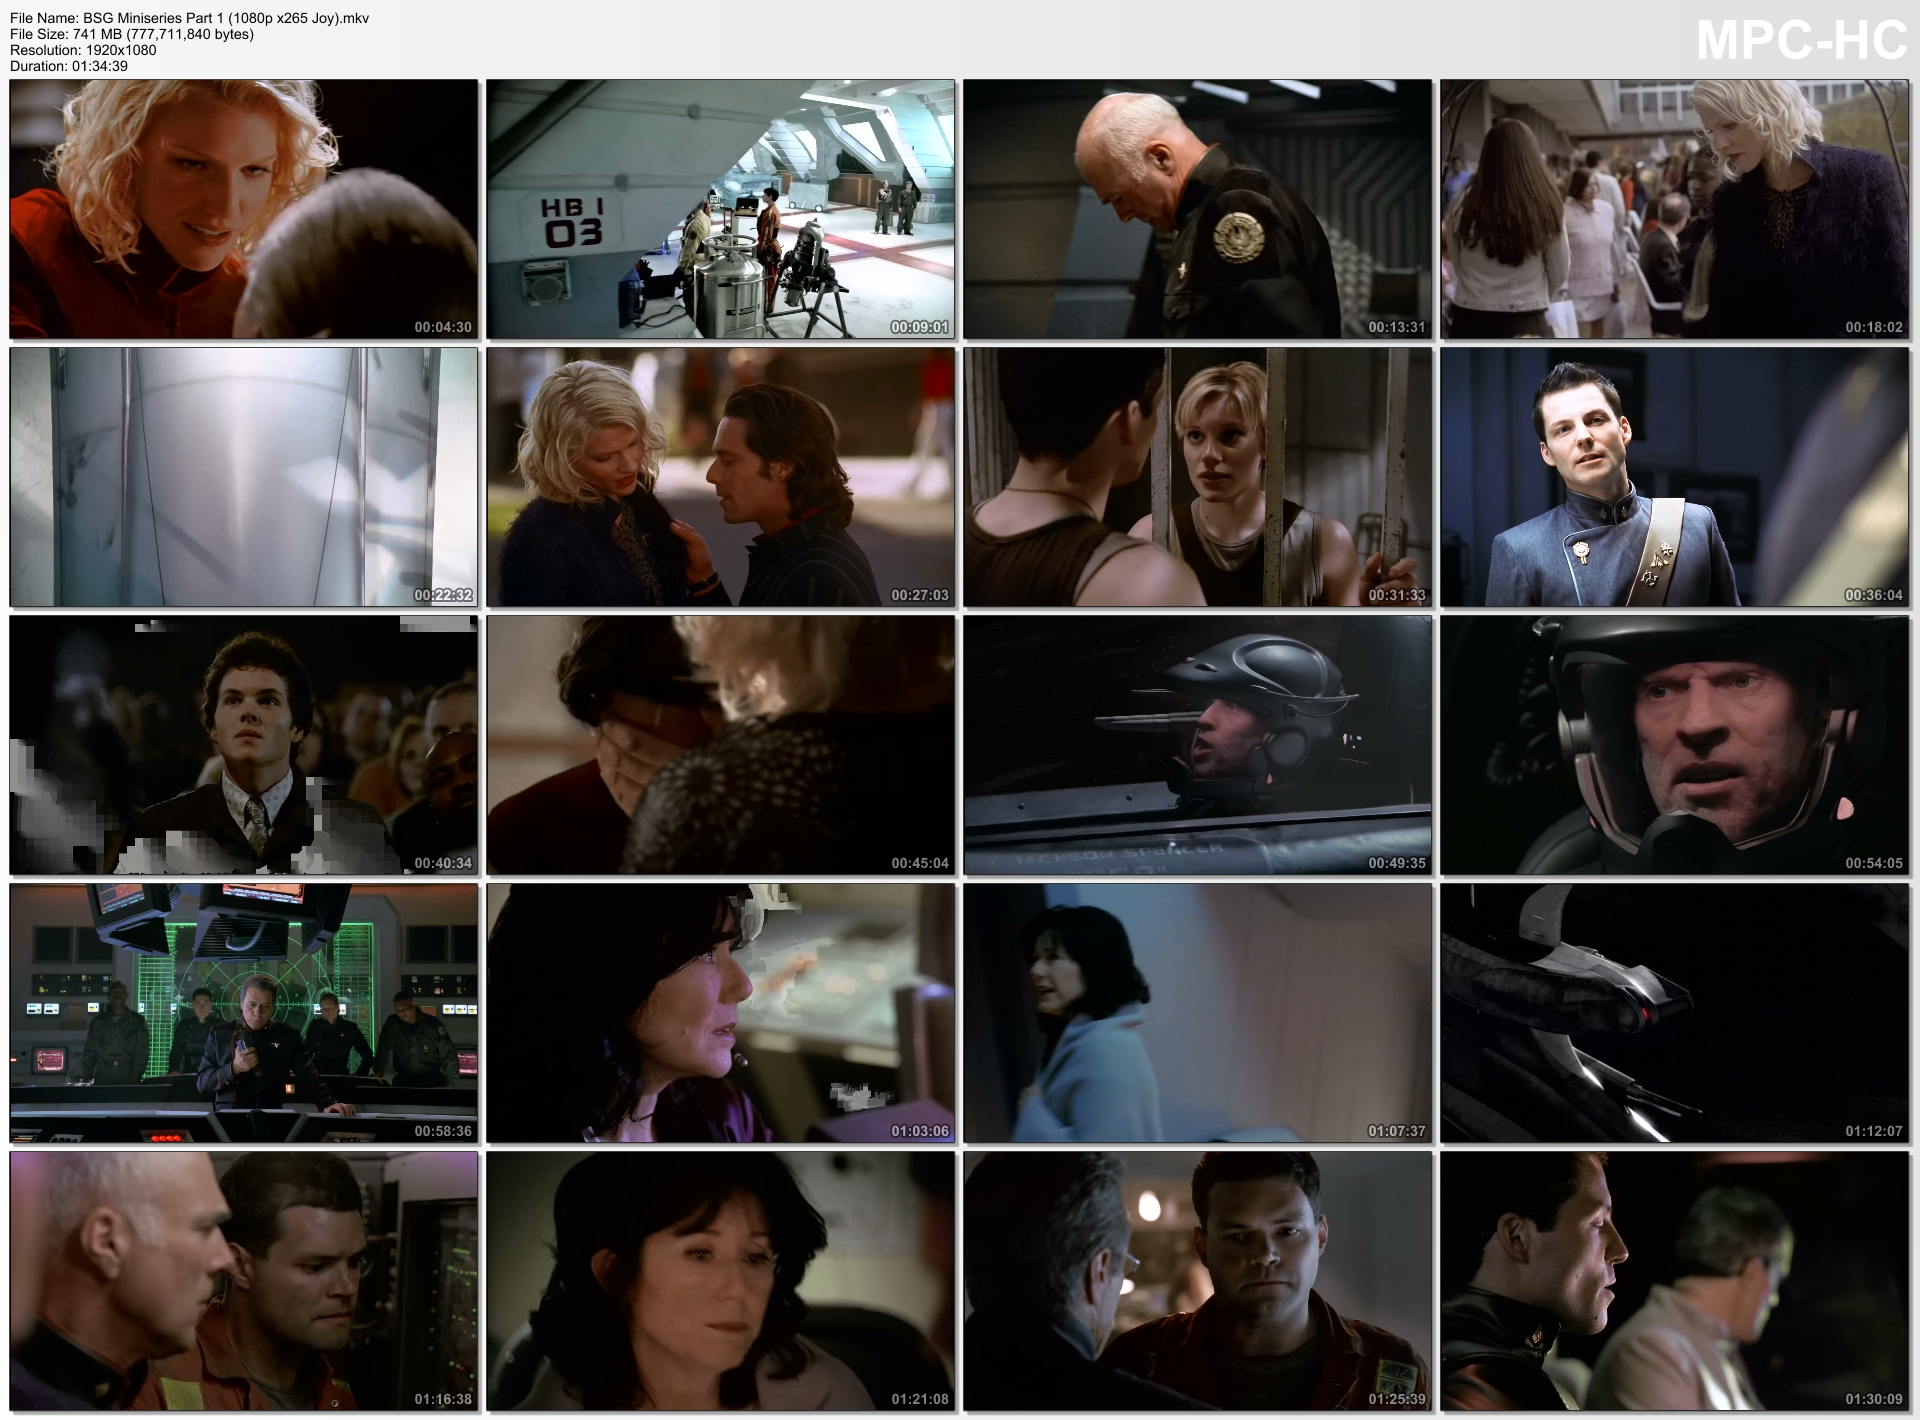 BSG_Miniseries_Part_1_1080p_x265_Joymkvt